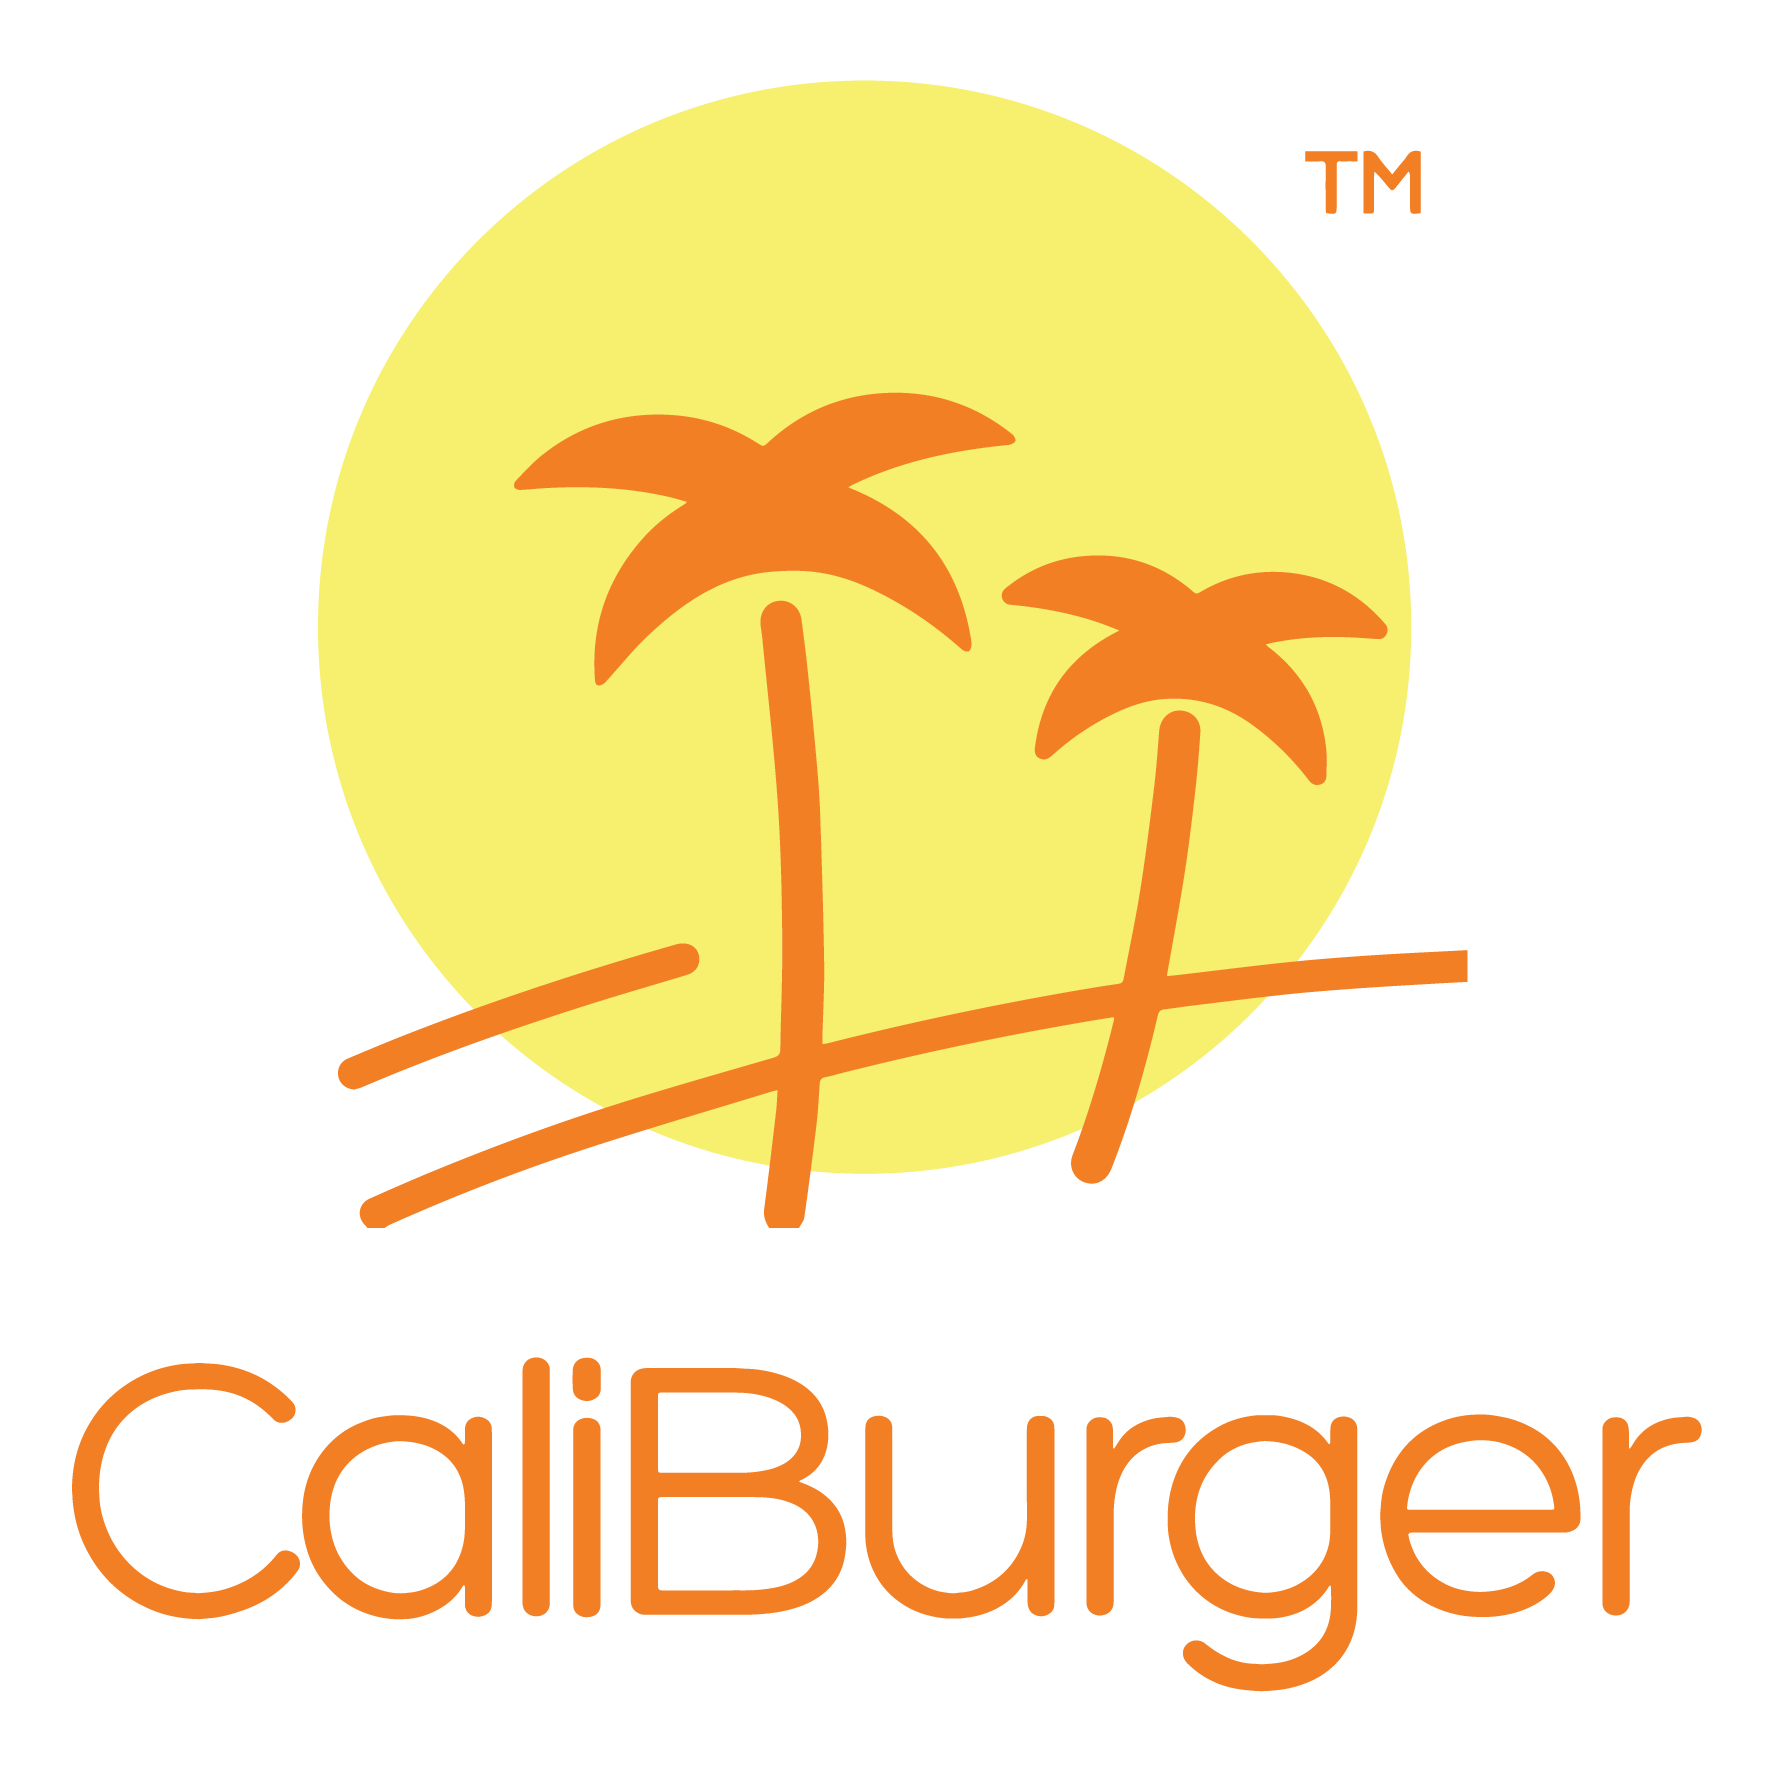 logo caliburger